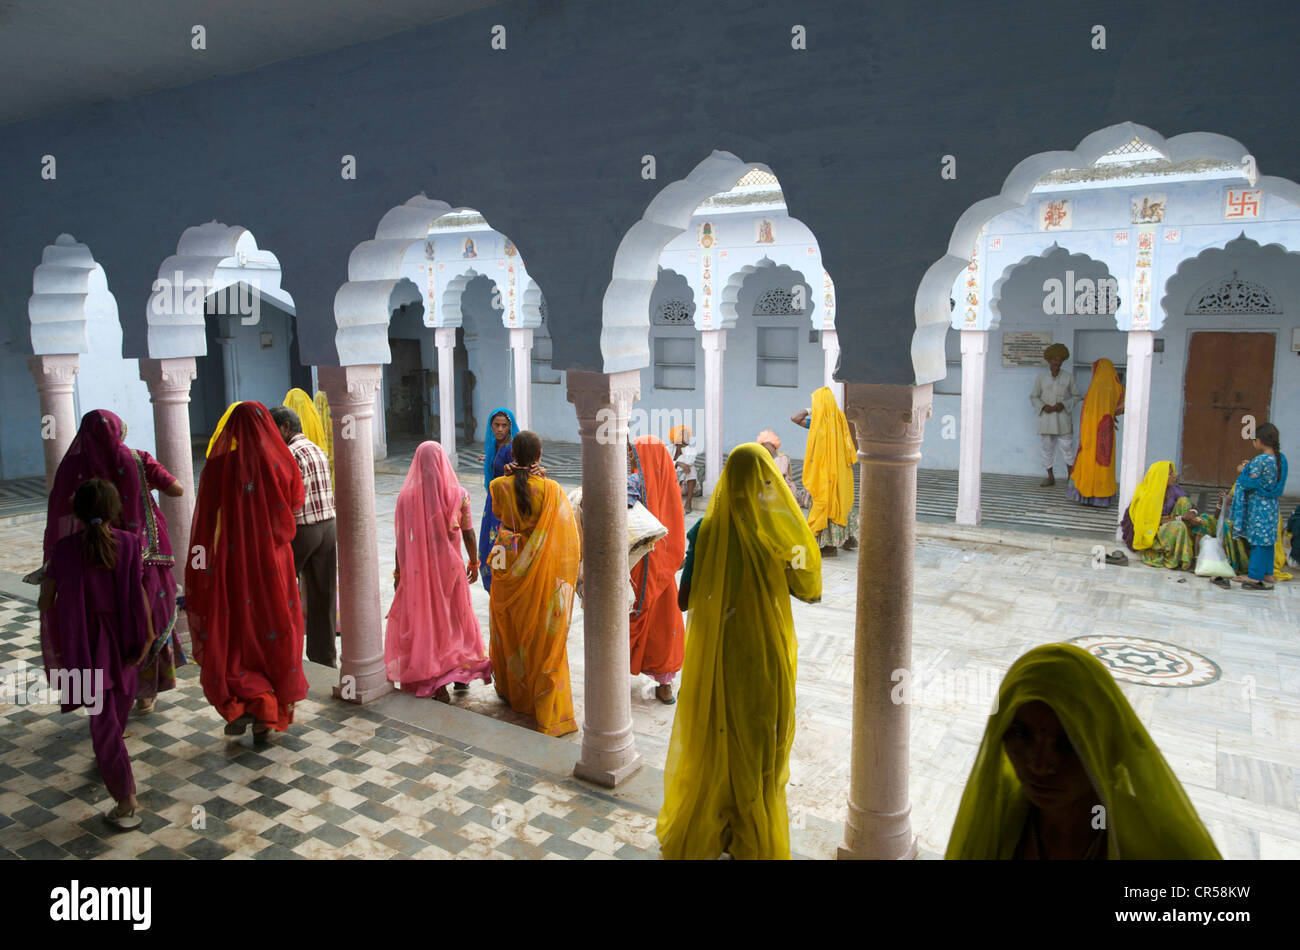 India, Rajasthan State, Pushkar, people grouping in a Hindu temple during the Pushkar Fair - Stock Image